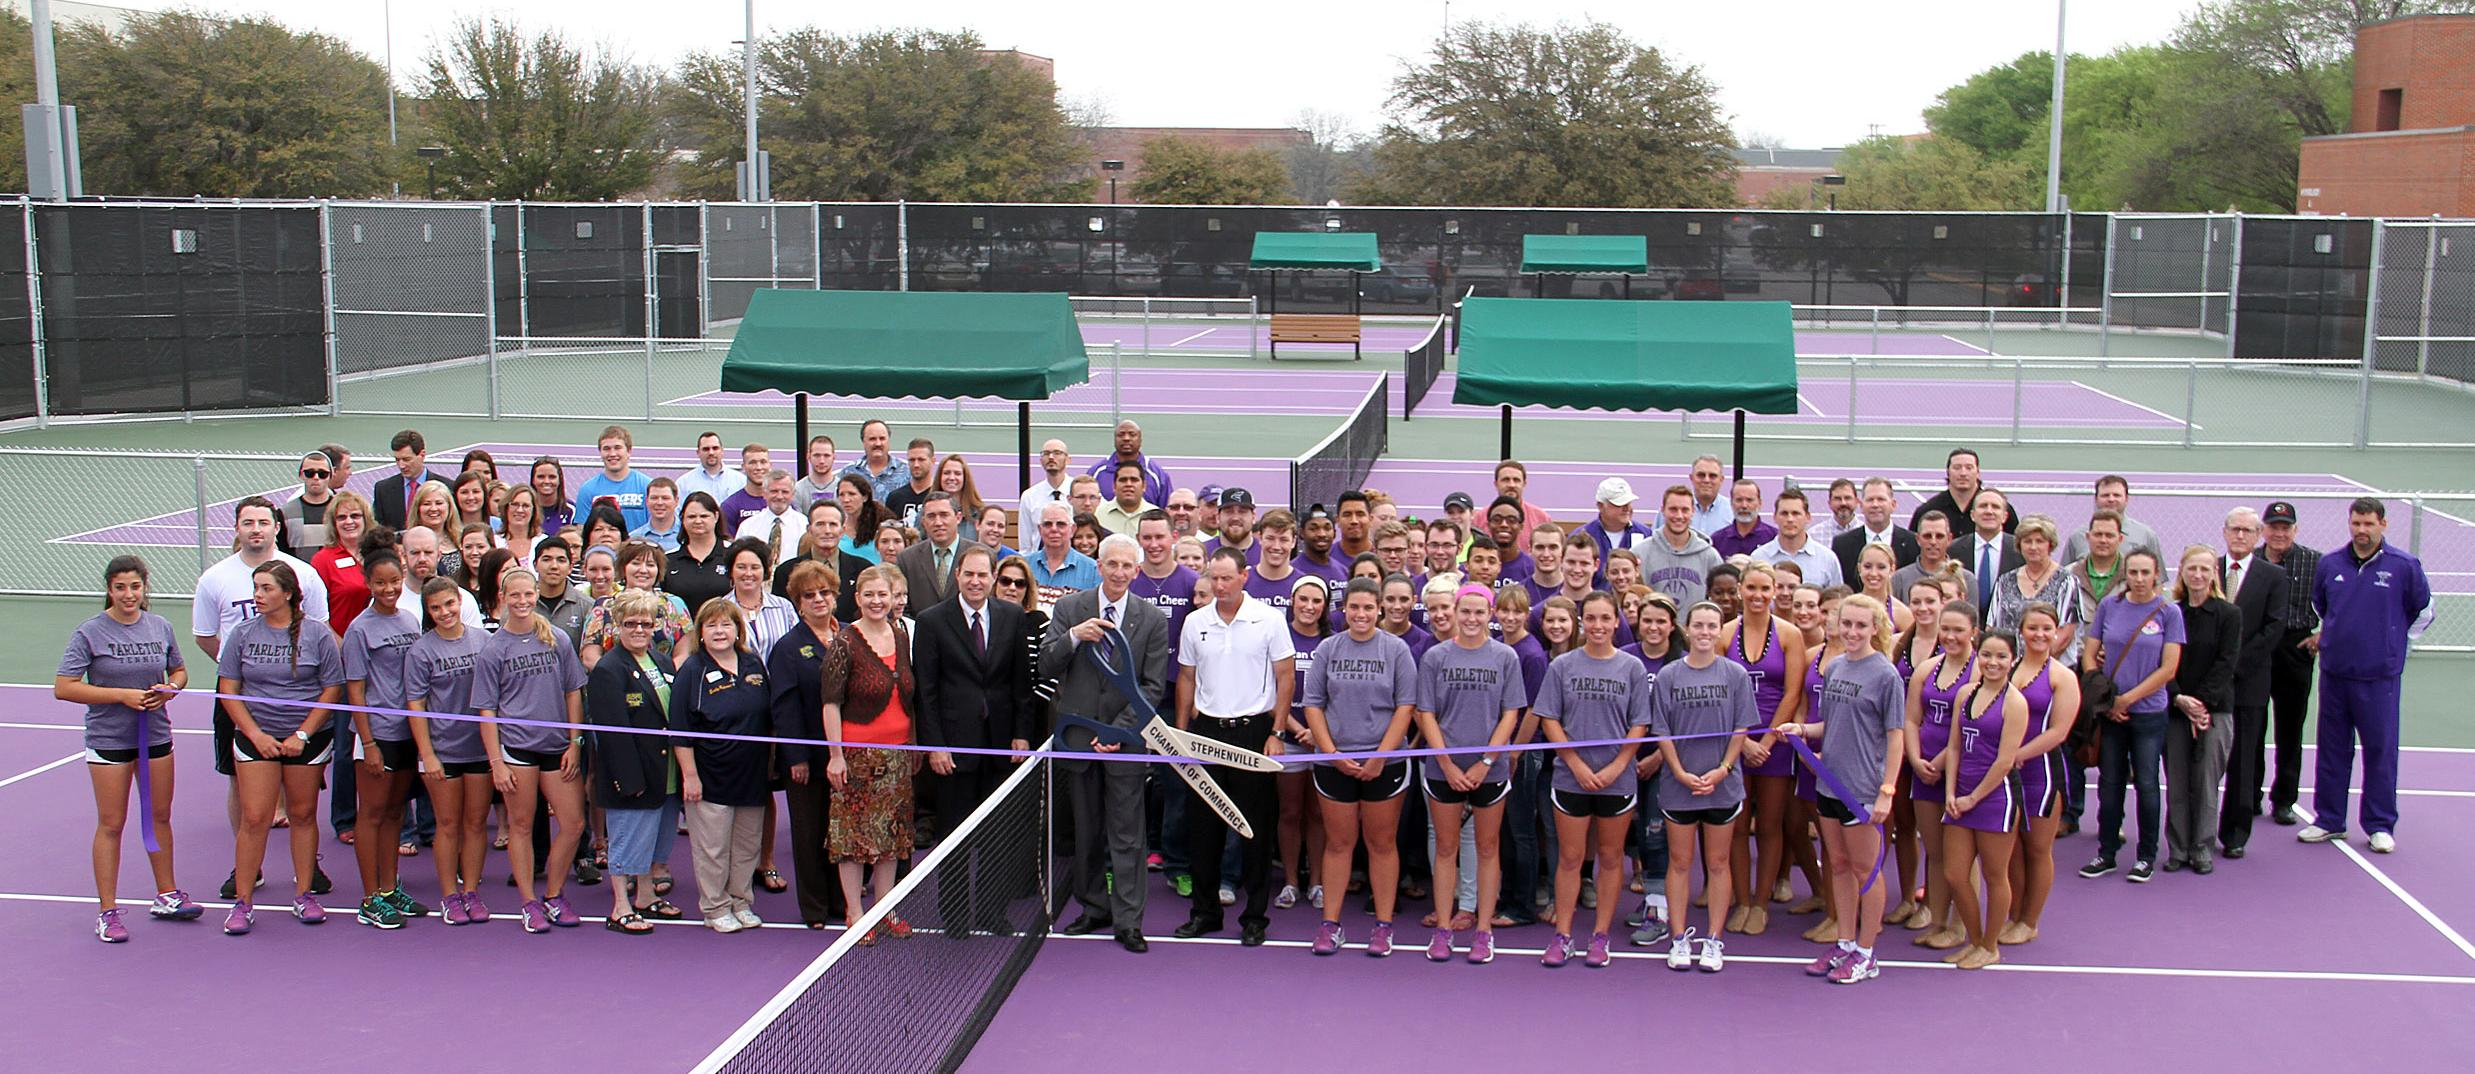 Tennis Court Renovations Complete